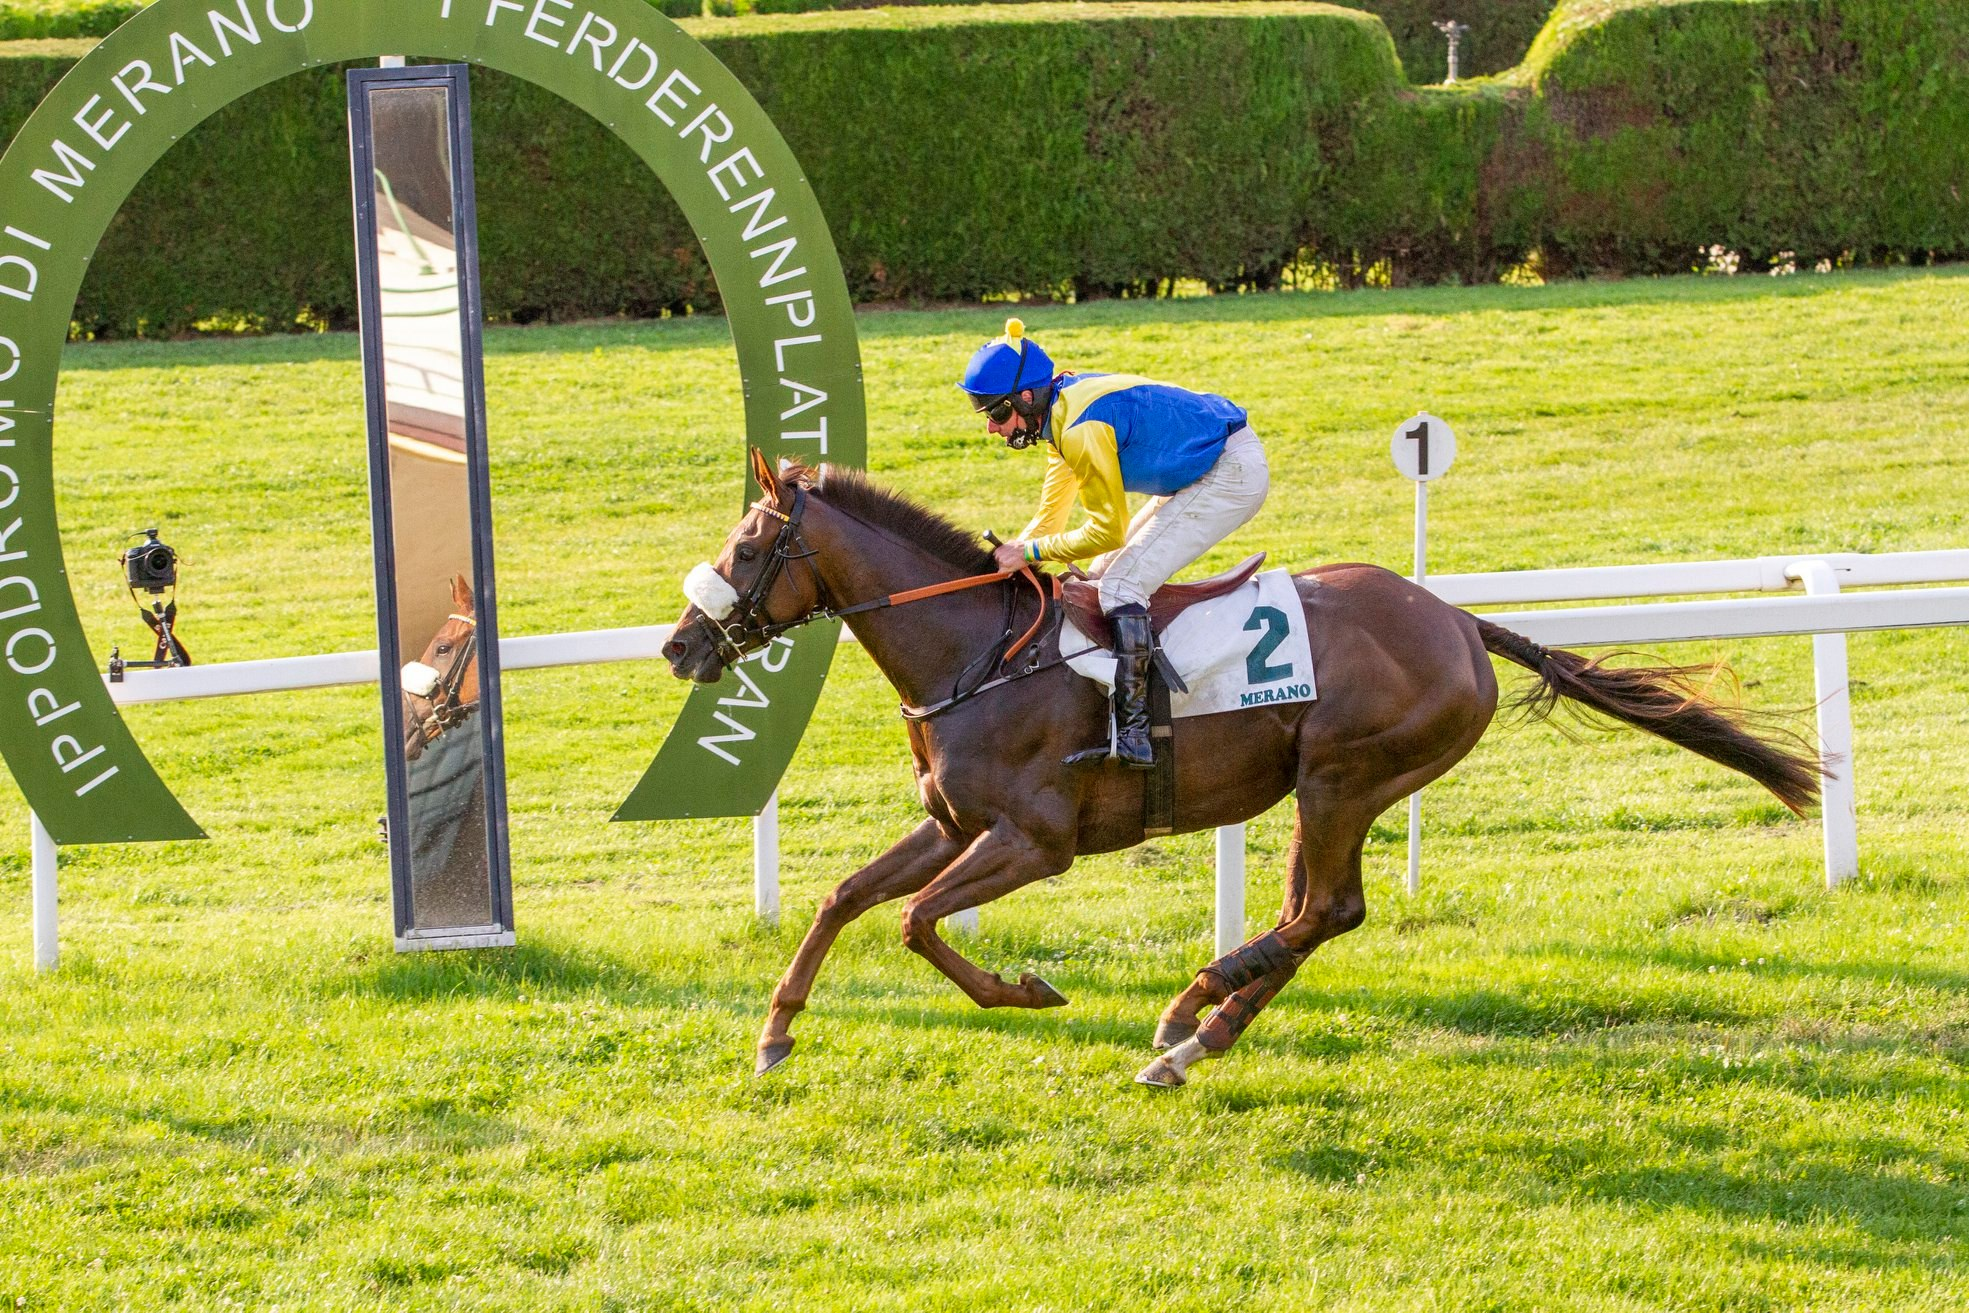 Premio Steeple-Chases d'Italia - Memorial Mario Argenton (Gr2) : First of All, seul au monde